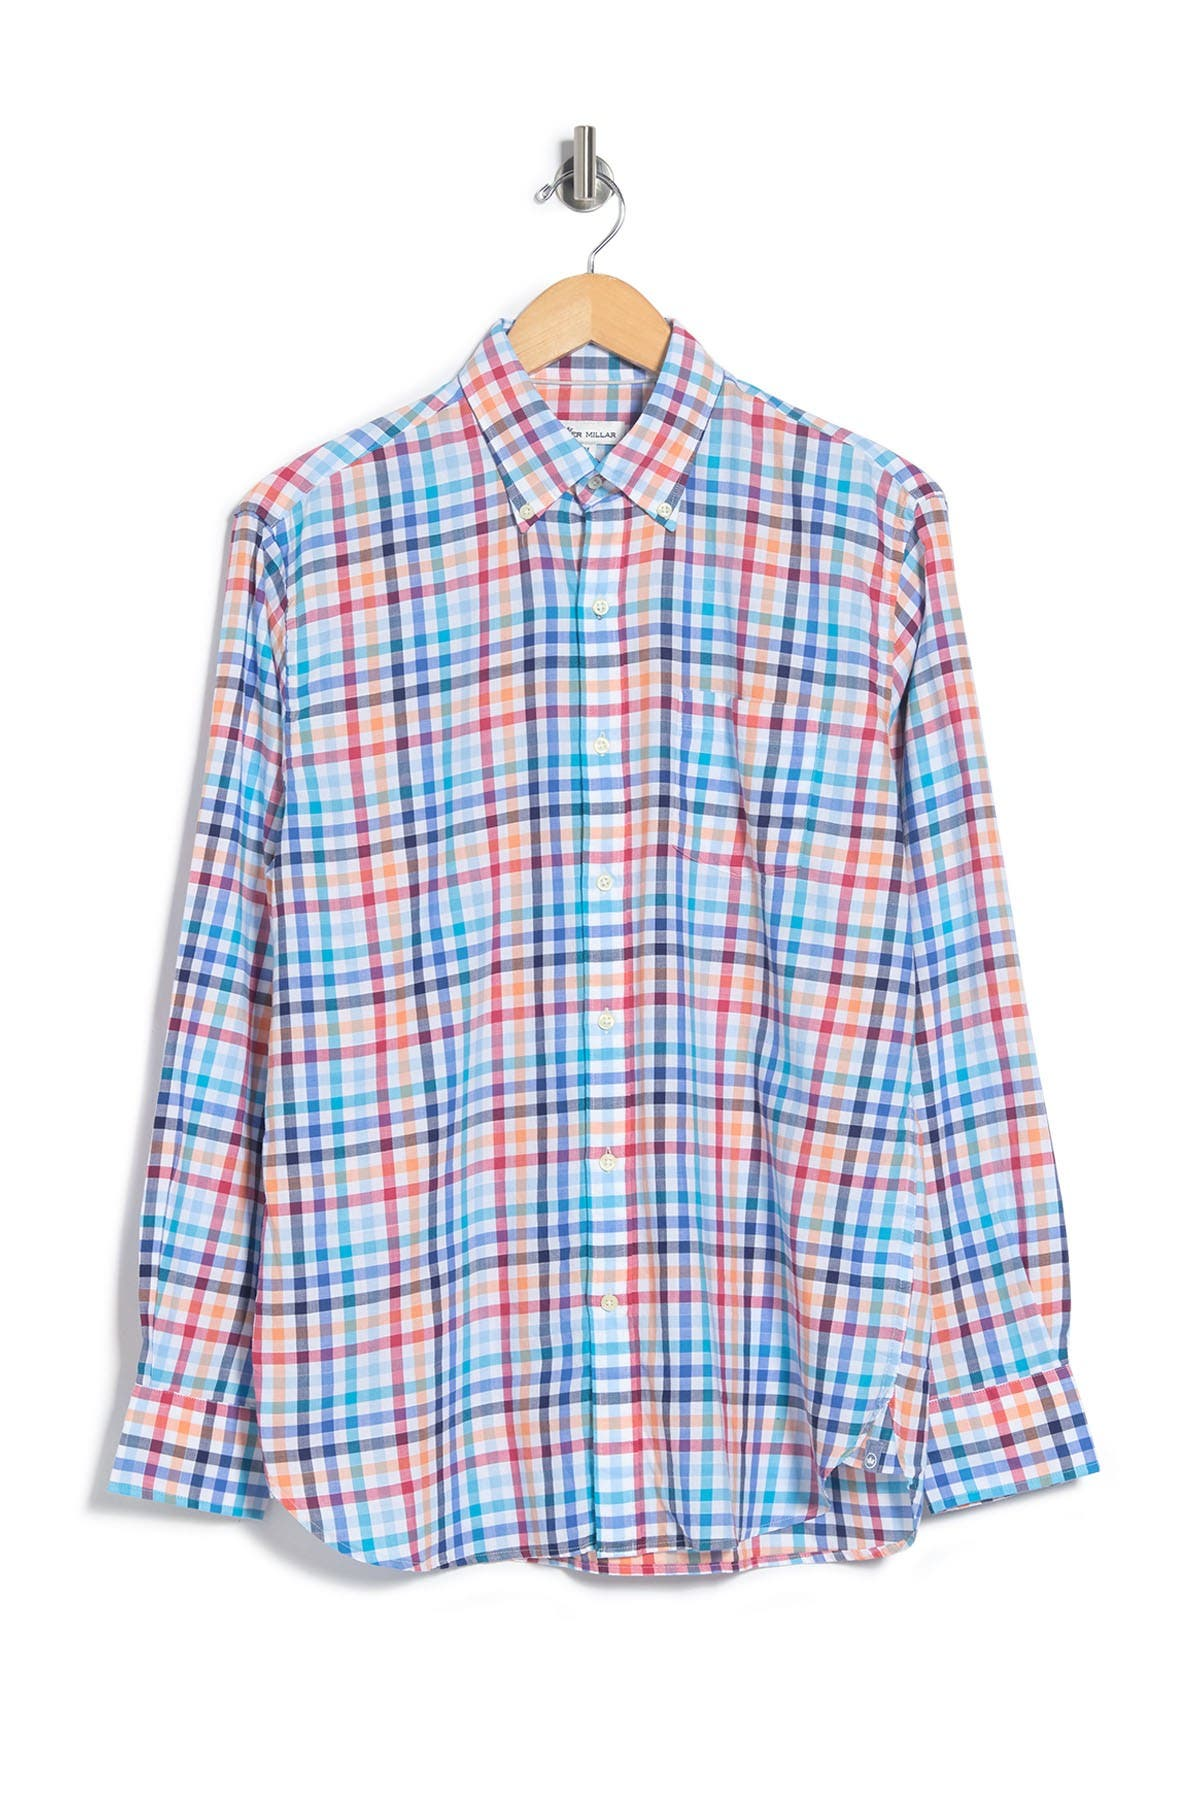 Image of Peter Millar Seaside Galleon Check Dress Shirt